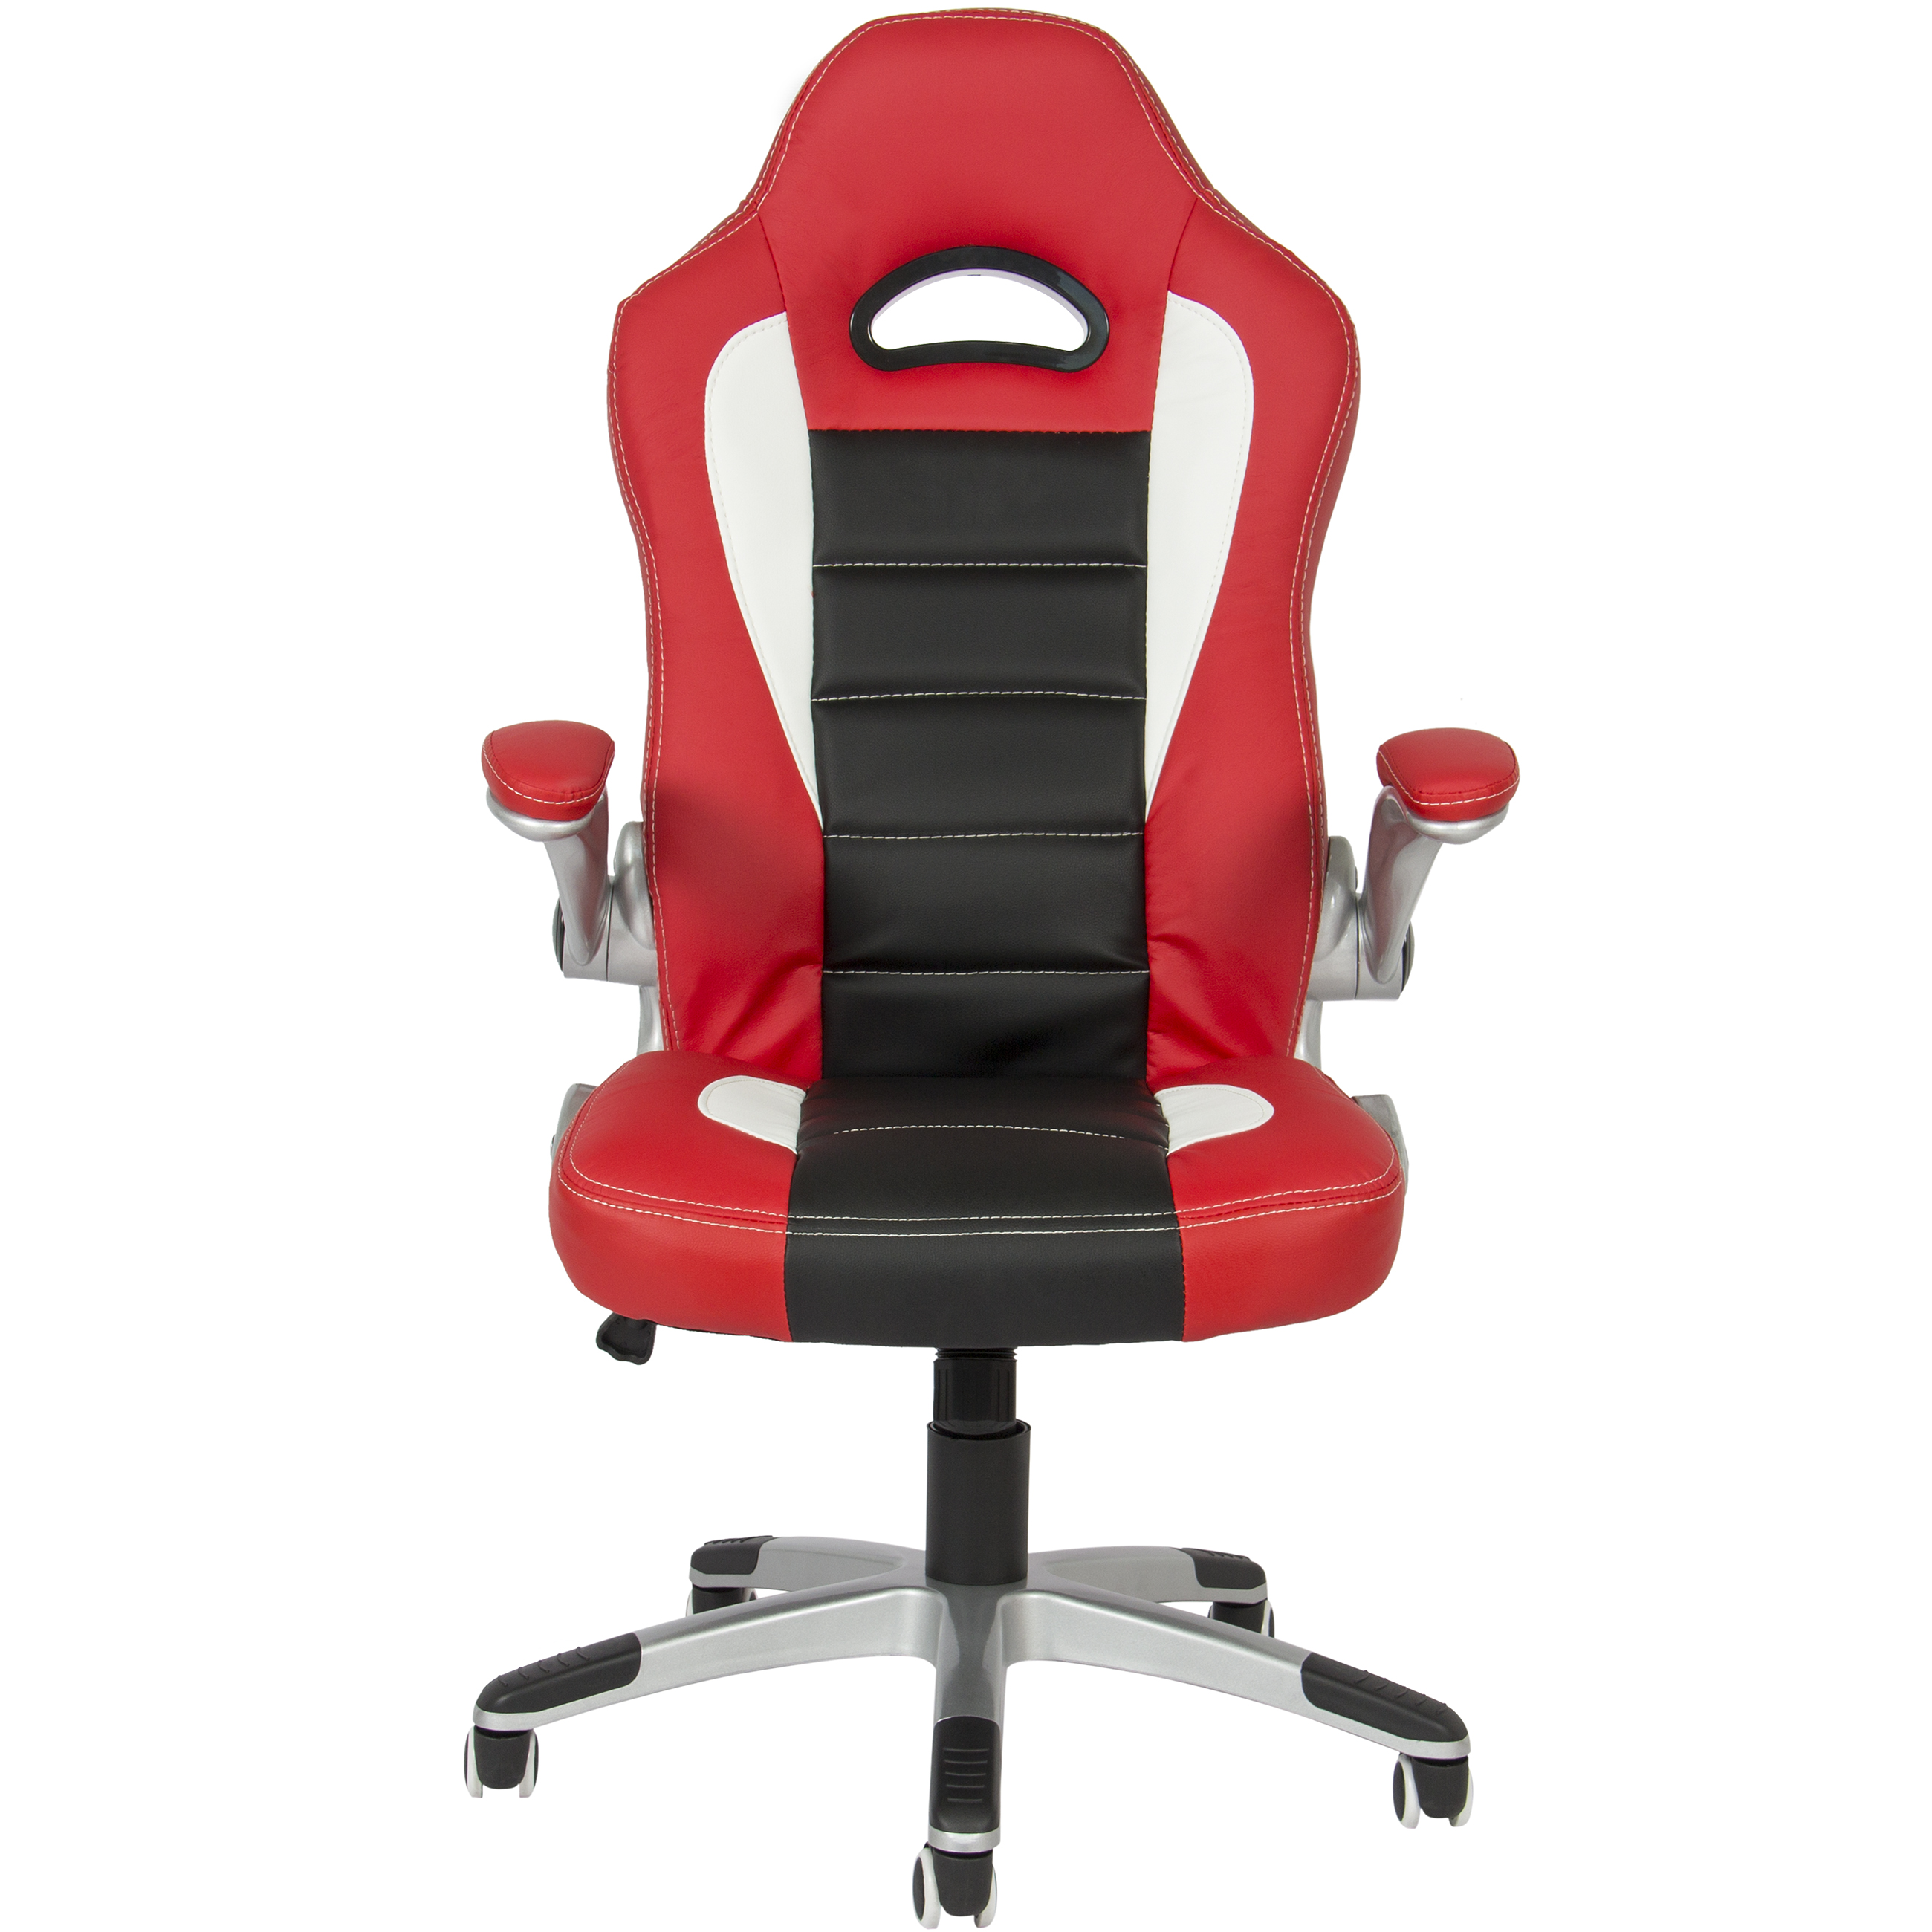 furniturebox computer swivel red black style white desk wr leather racing office chair bk sports